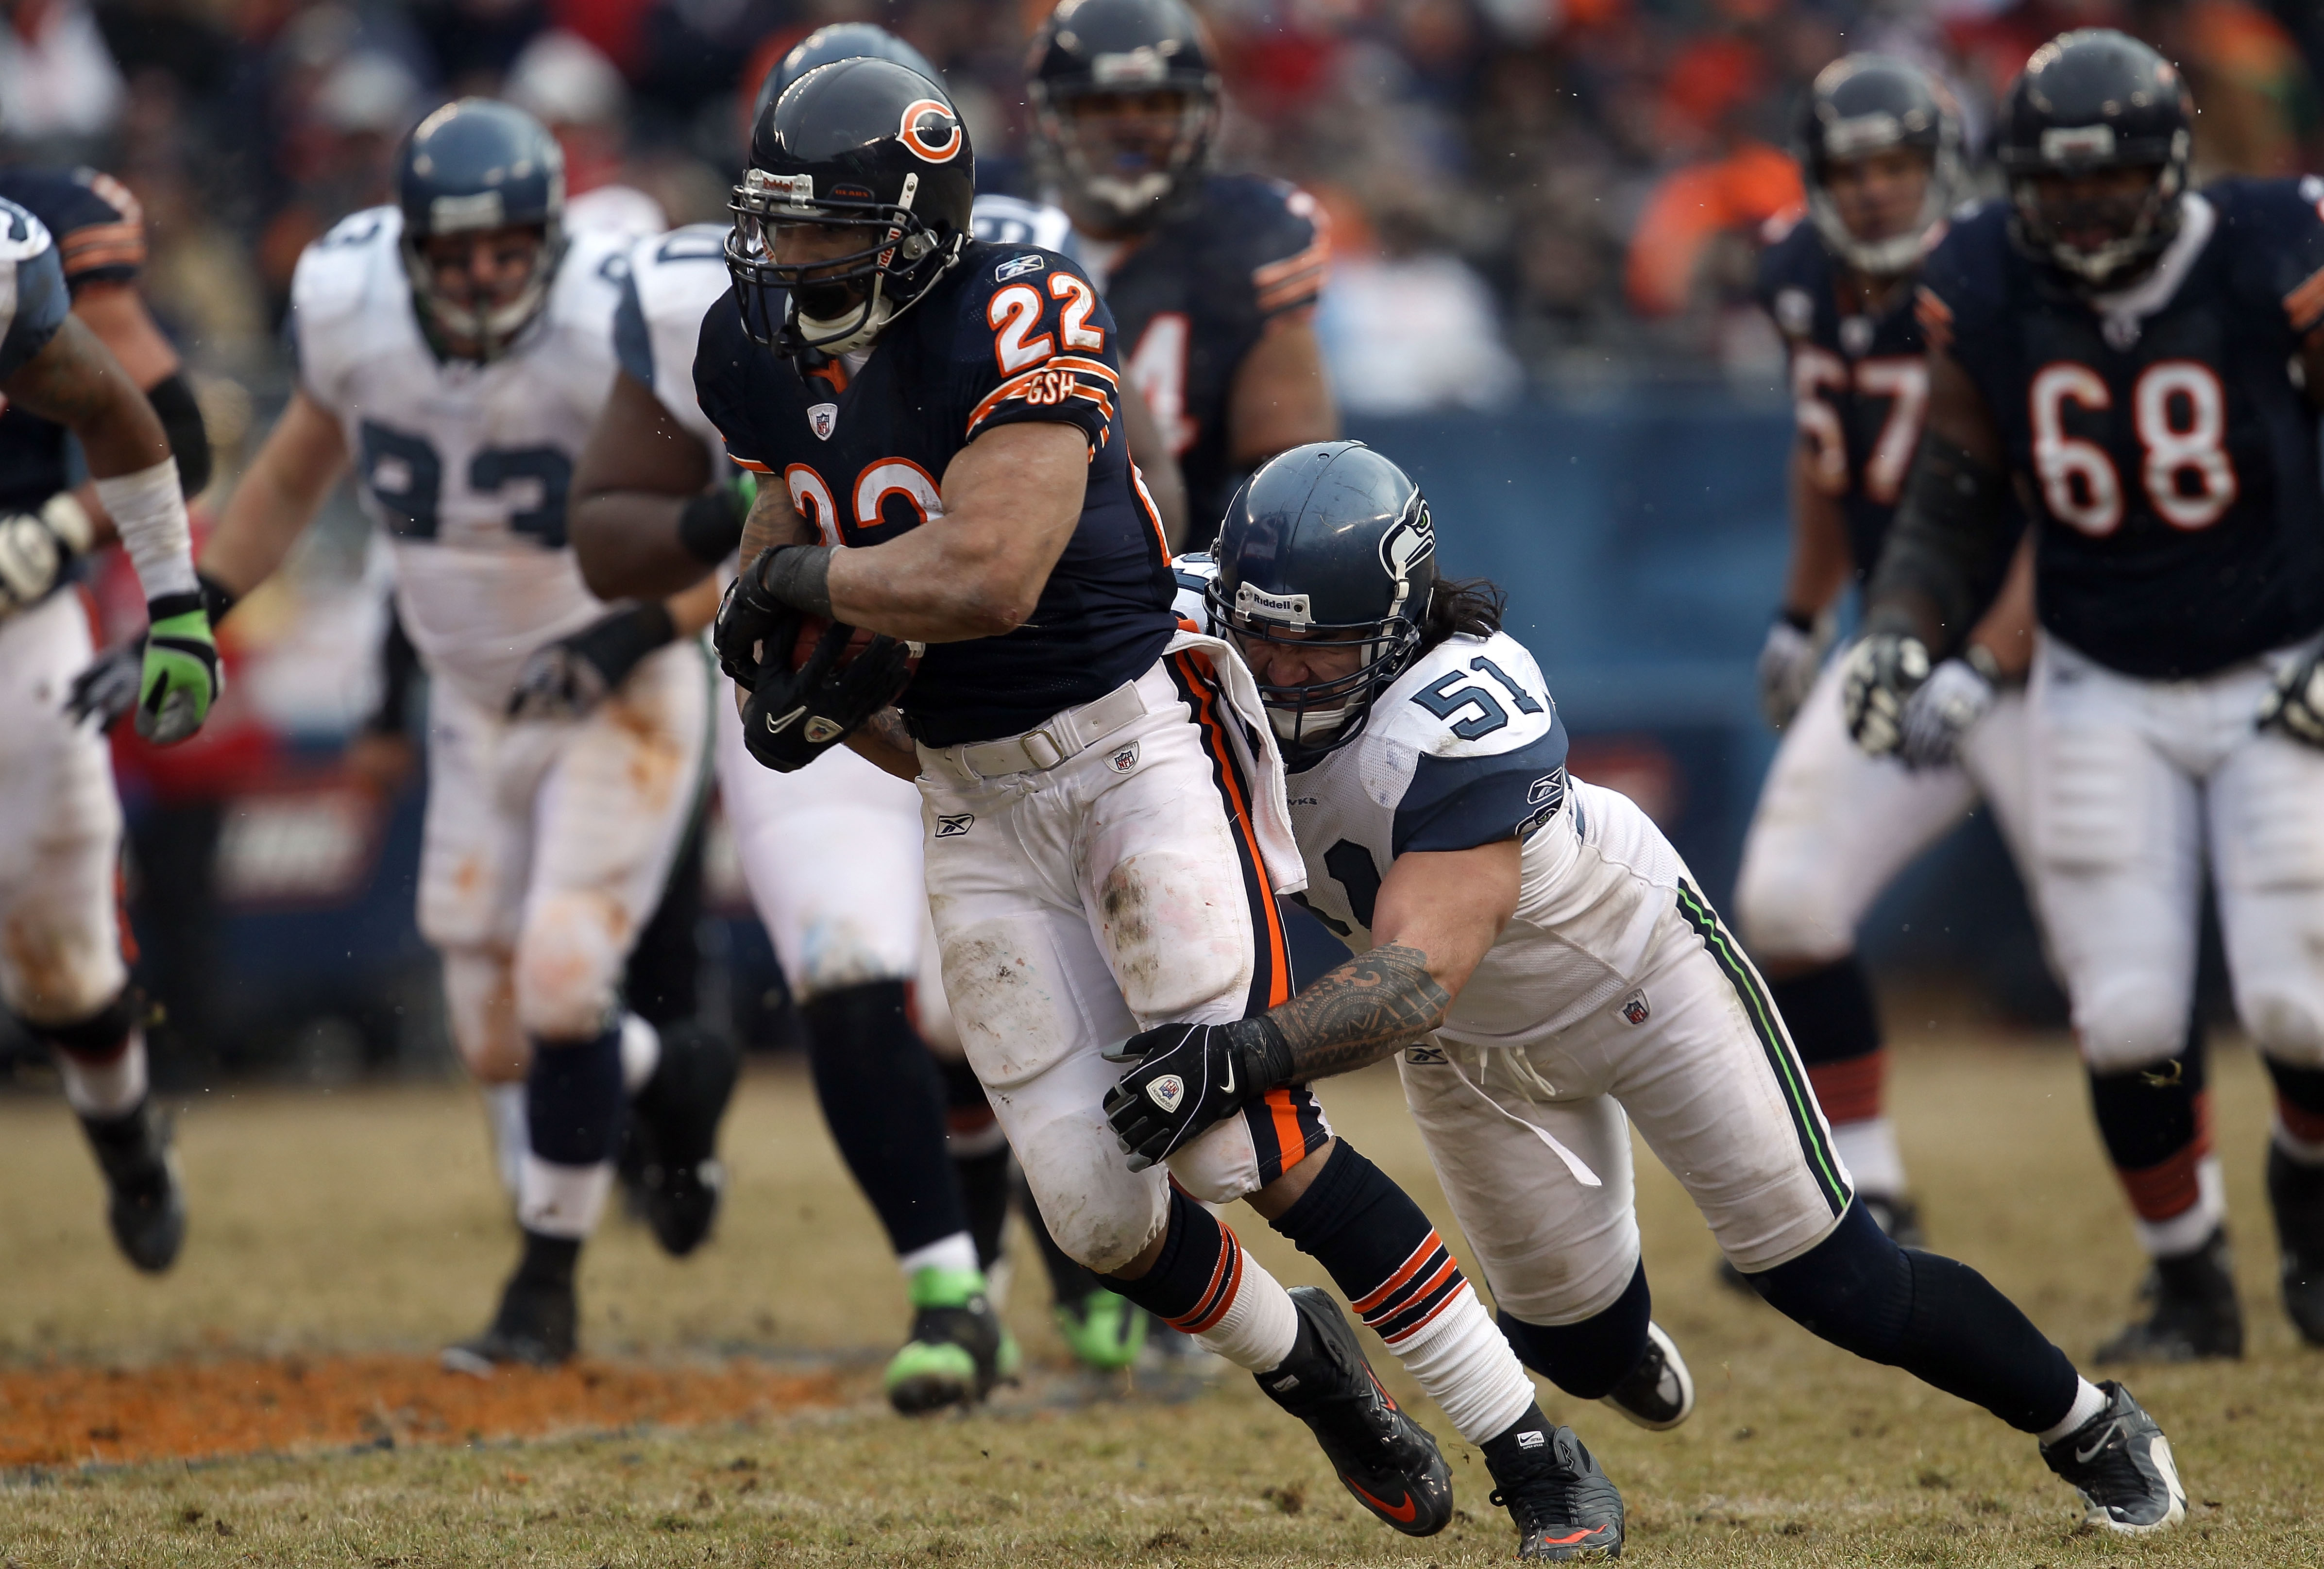 CHICAGO, IL - JANUARY 16:  Running back Matt Forte #22 of the Chicago Bears runs the ball as Lofa Tatupu #51 of the Seattle Seahawks attempts to tackle him from behind in the 2011 NFC divisional playoff game at Soldier Field on January 16, 2011 in Chicago